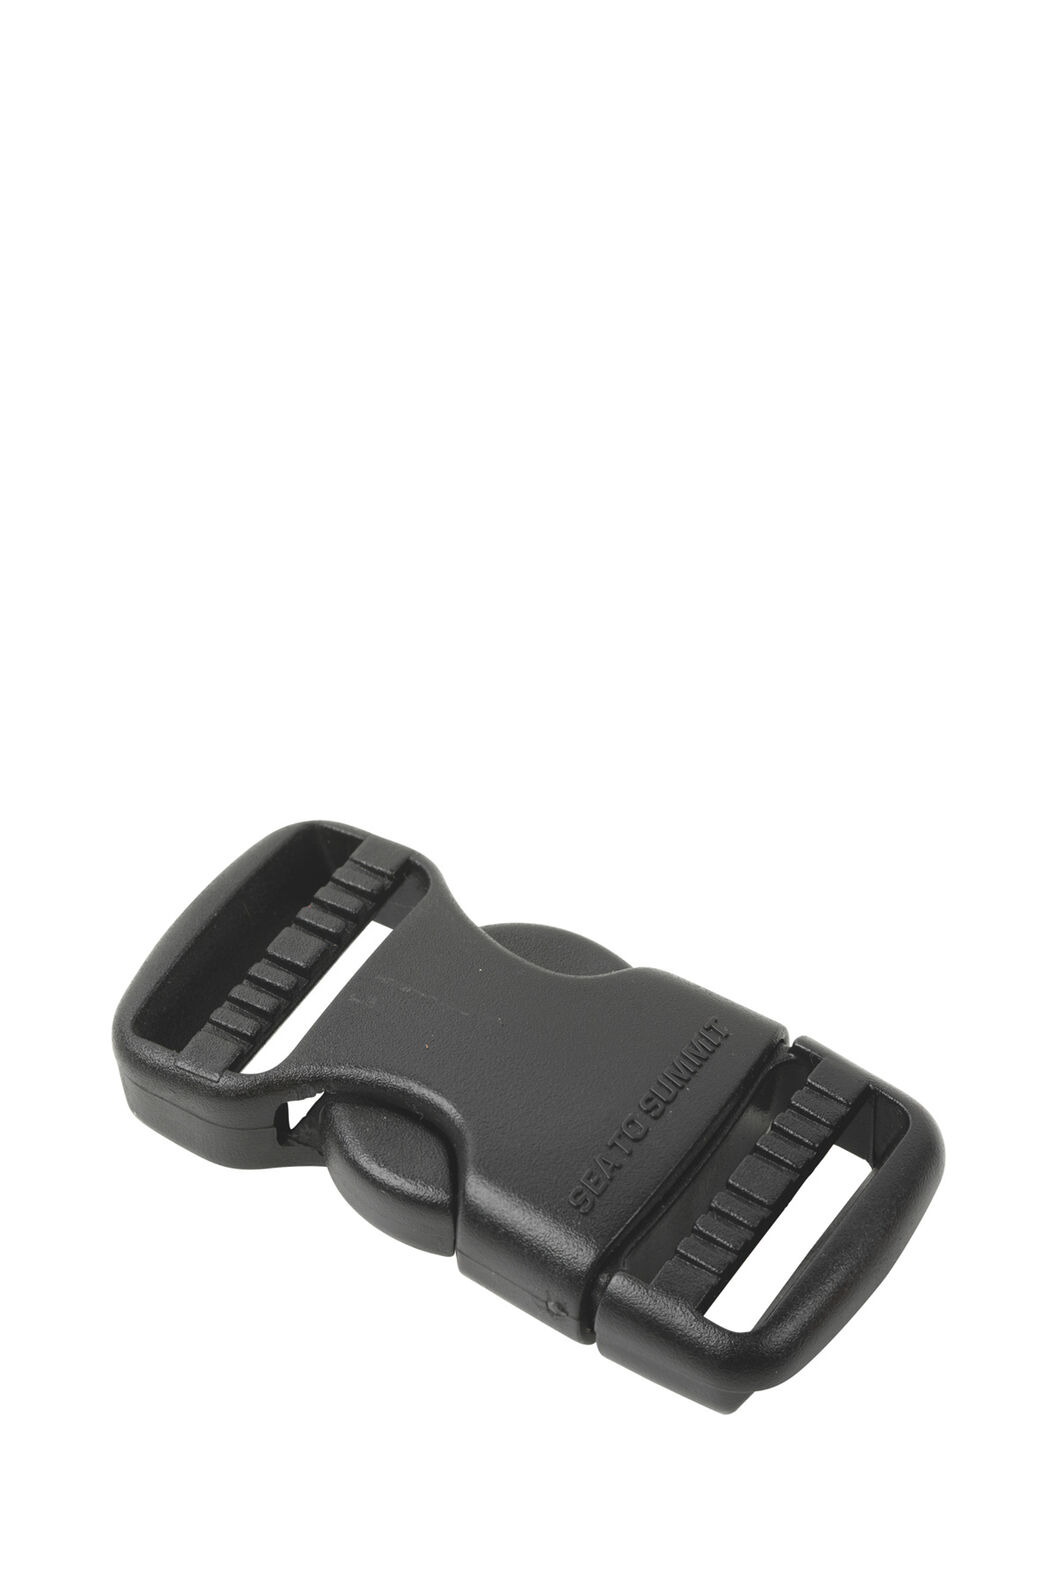 Sea to Summit Field Repair Buckle 20mm Side Release 1 Pin, None, hi-res